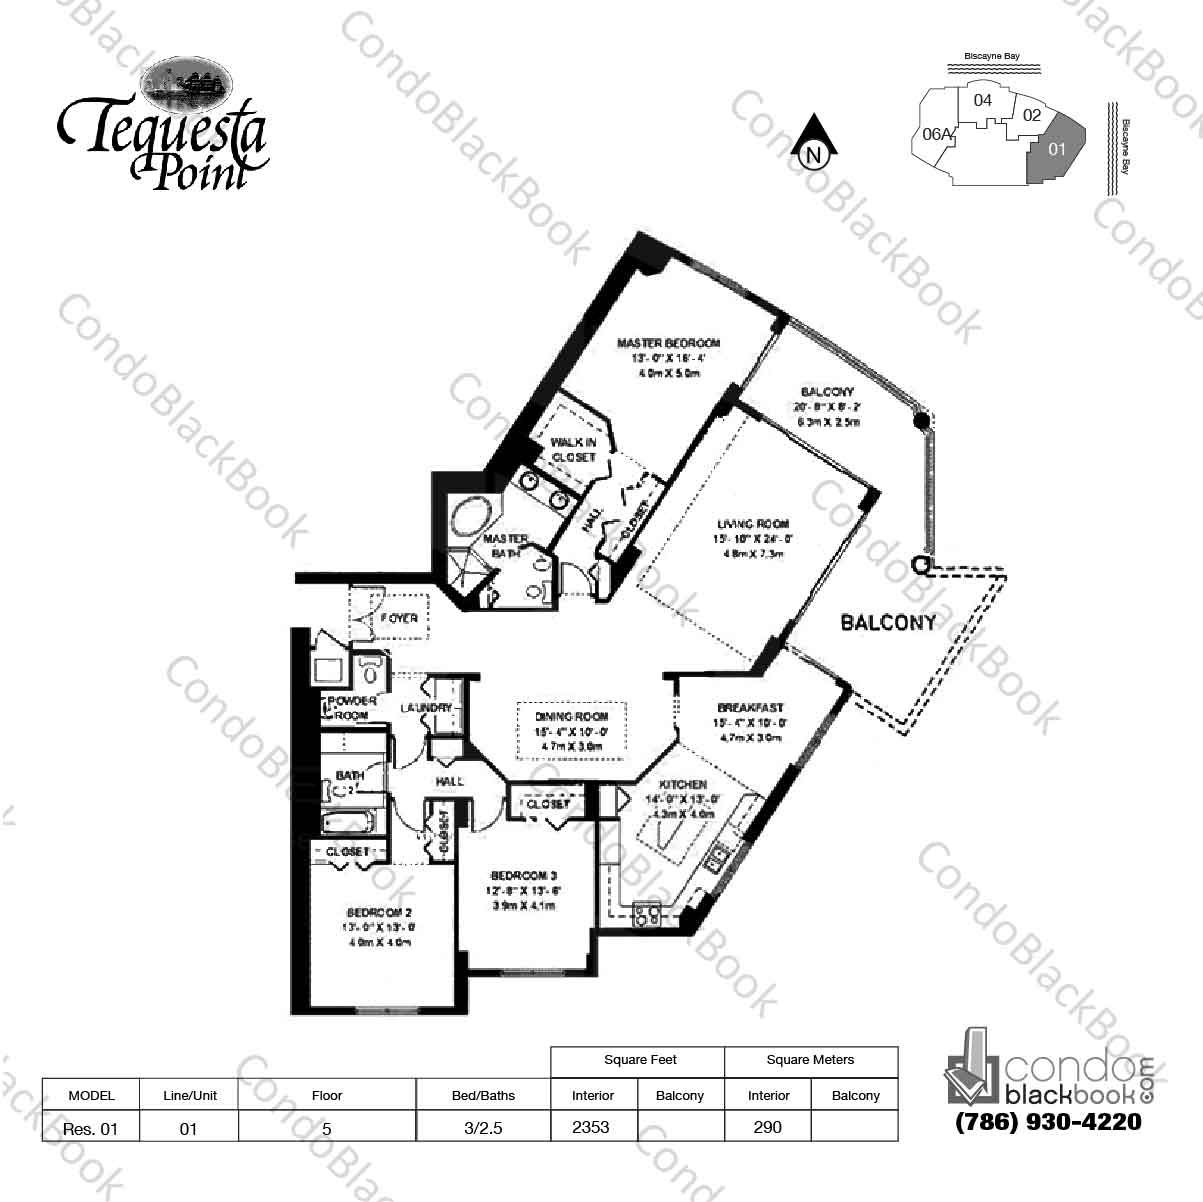 Floor plan for Three Tequesta Point Brickell Key Miami, model Res. 01, line 01, 3 / 2.5 bedrooms, 2353 sq ft